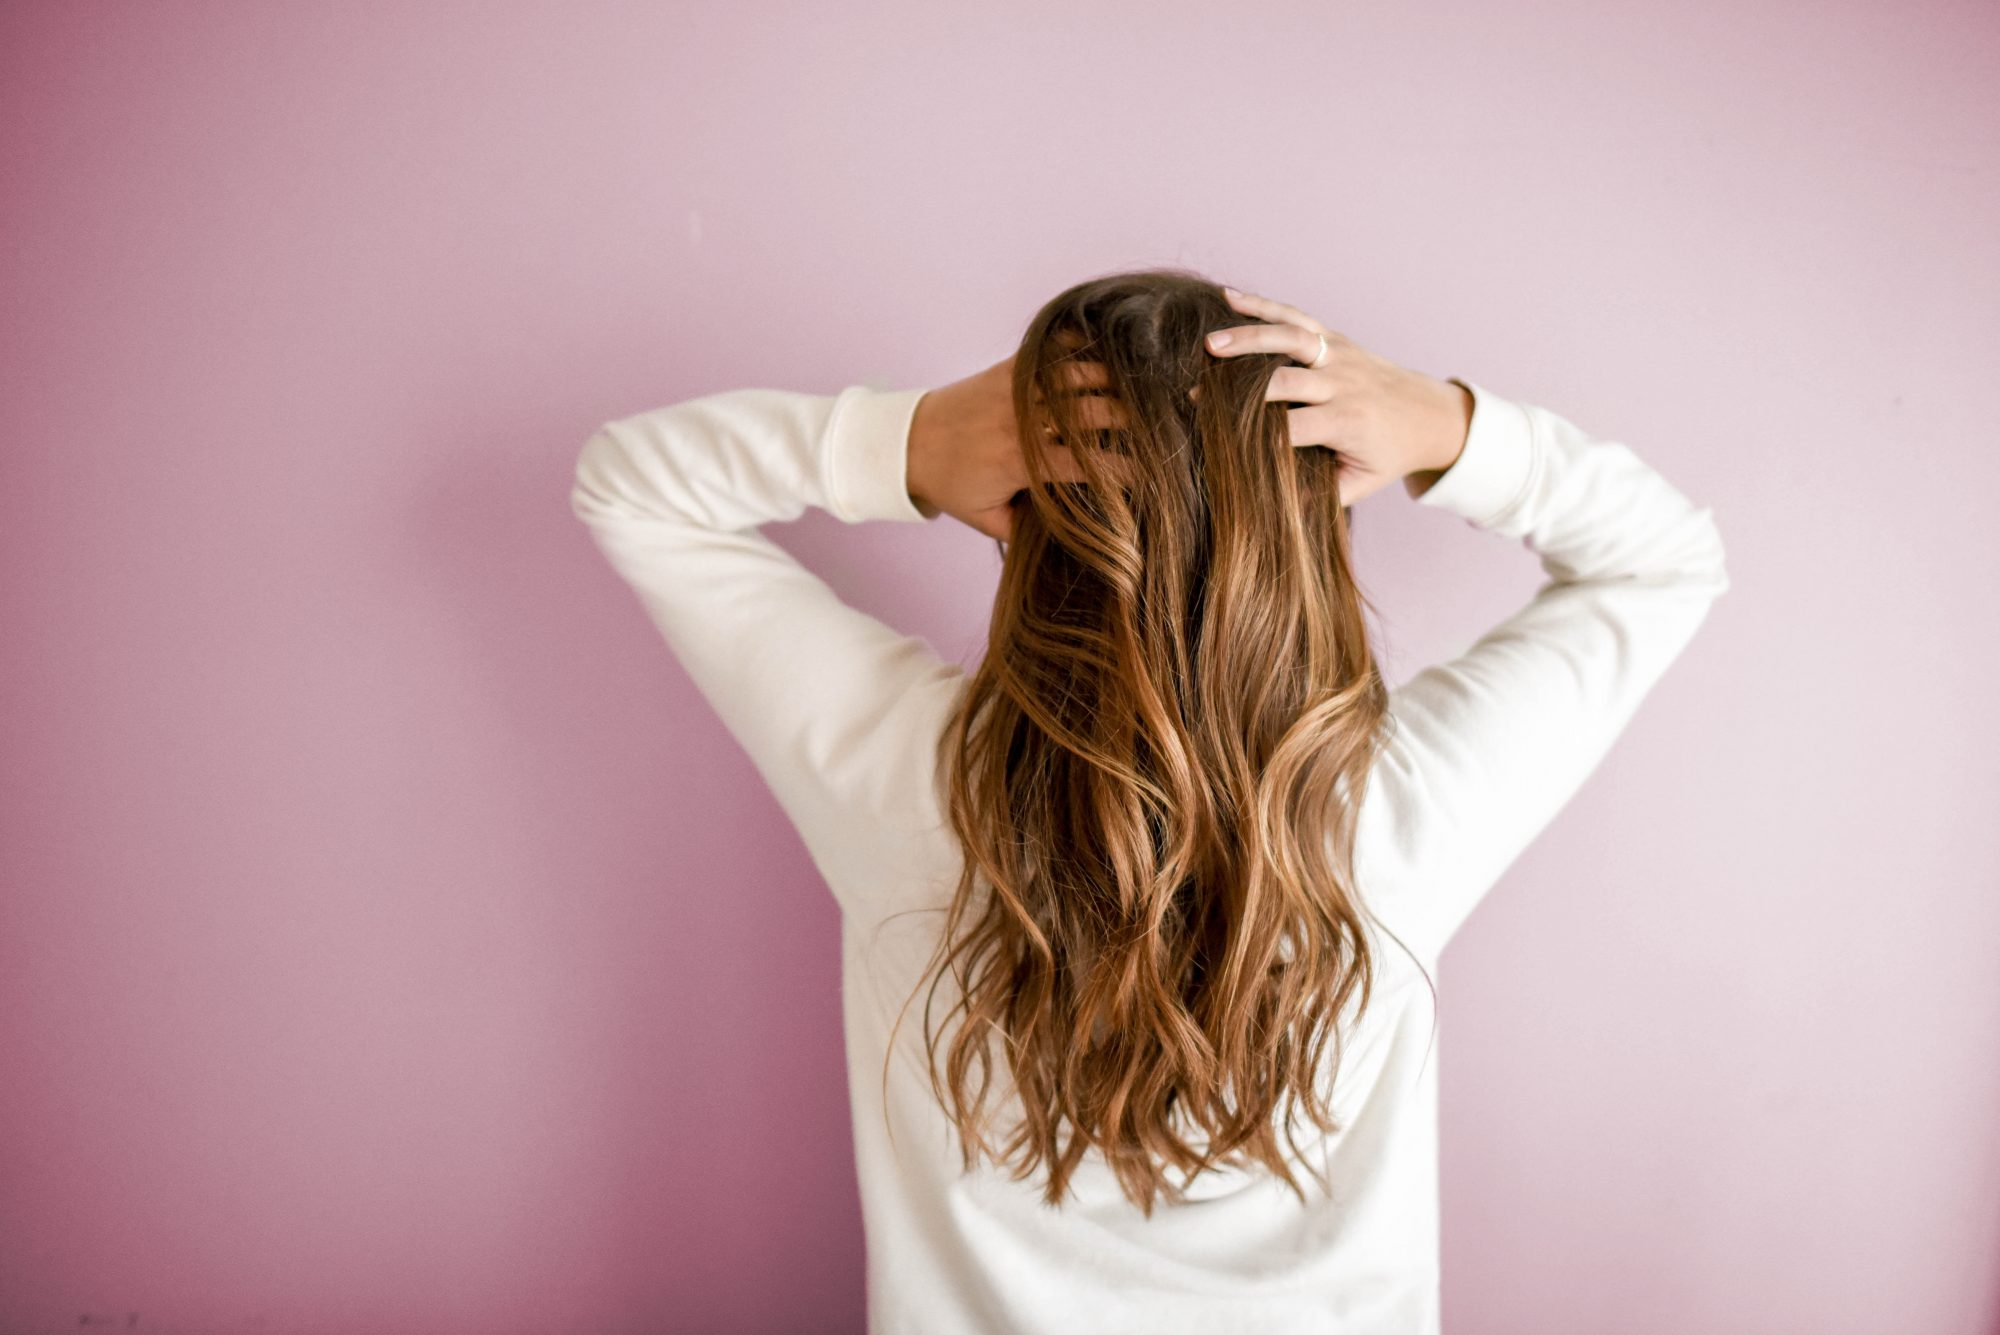 11 Habits to Adopt Right Now for Seriously Healthy Hair